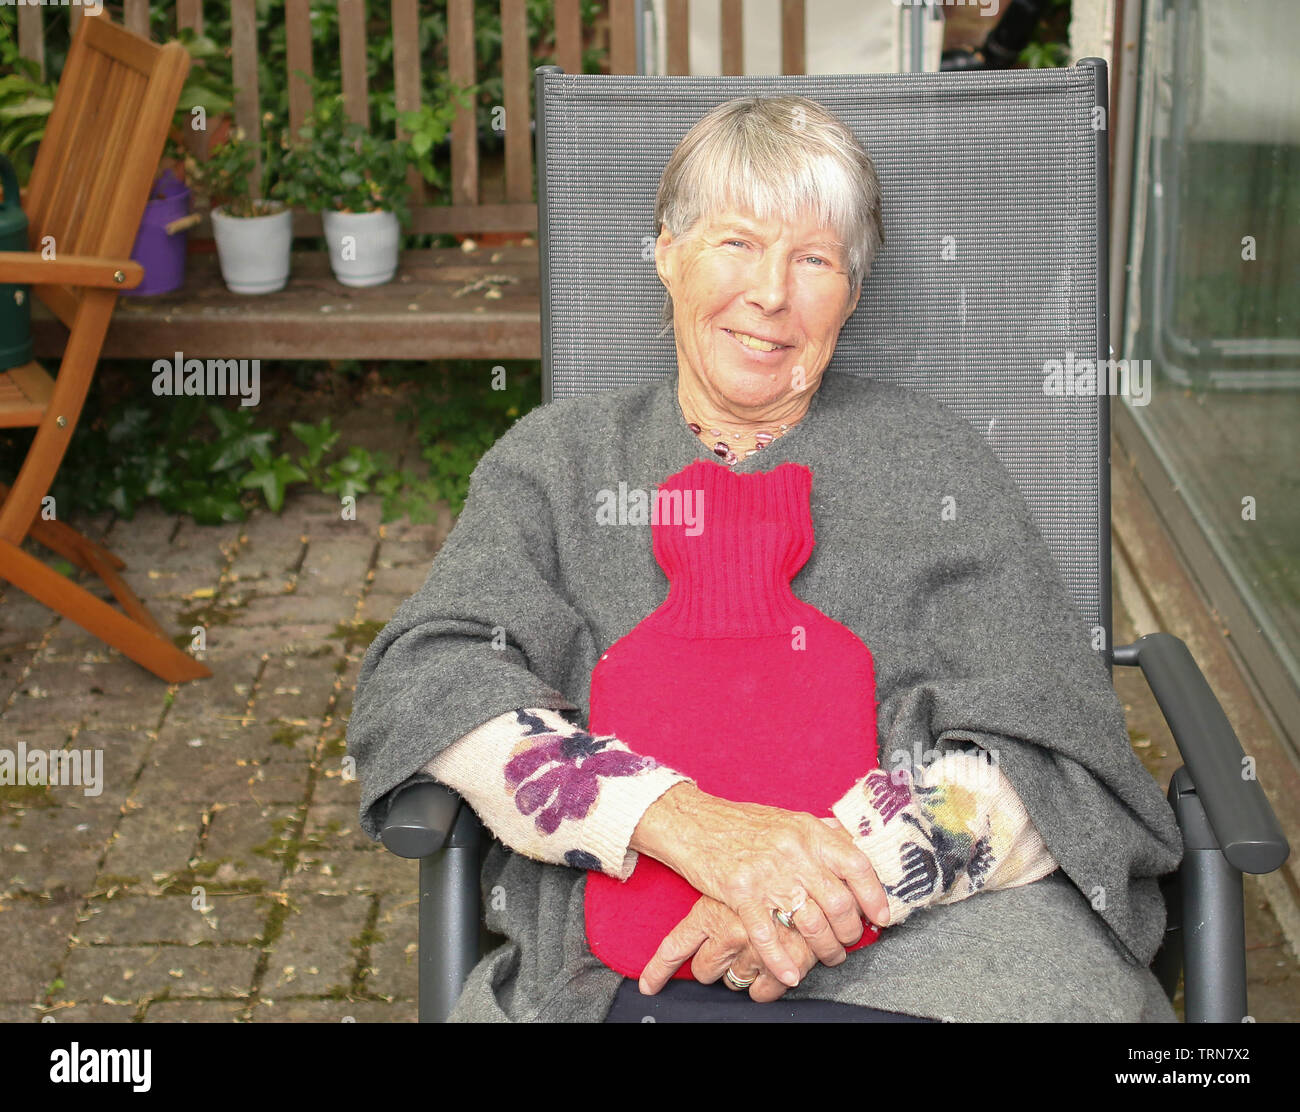 OAP, woman sitting in sunshine with hot water bottle. - Stock Image